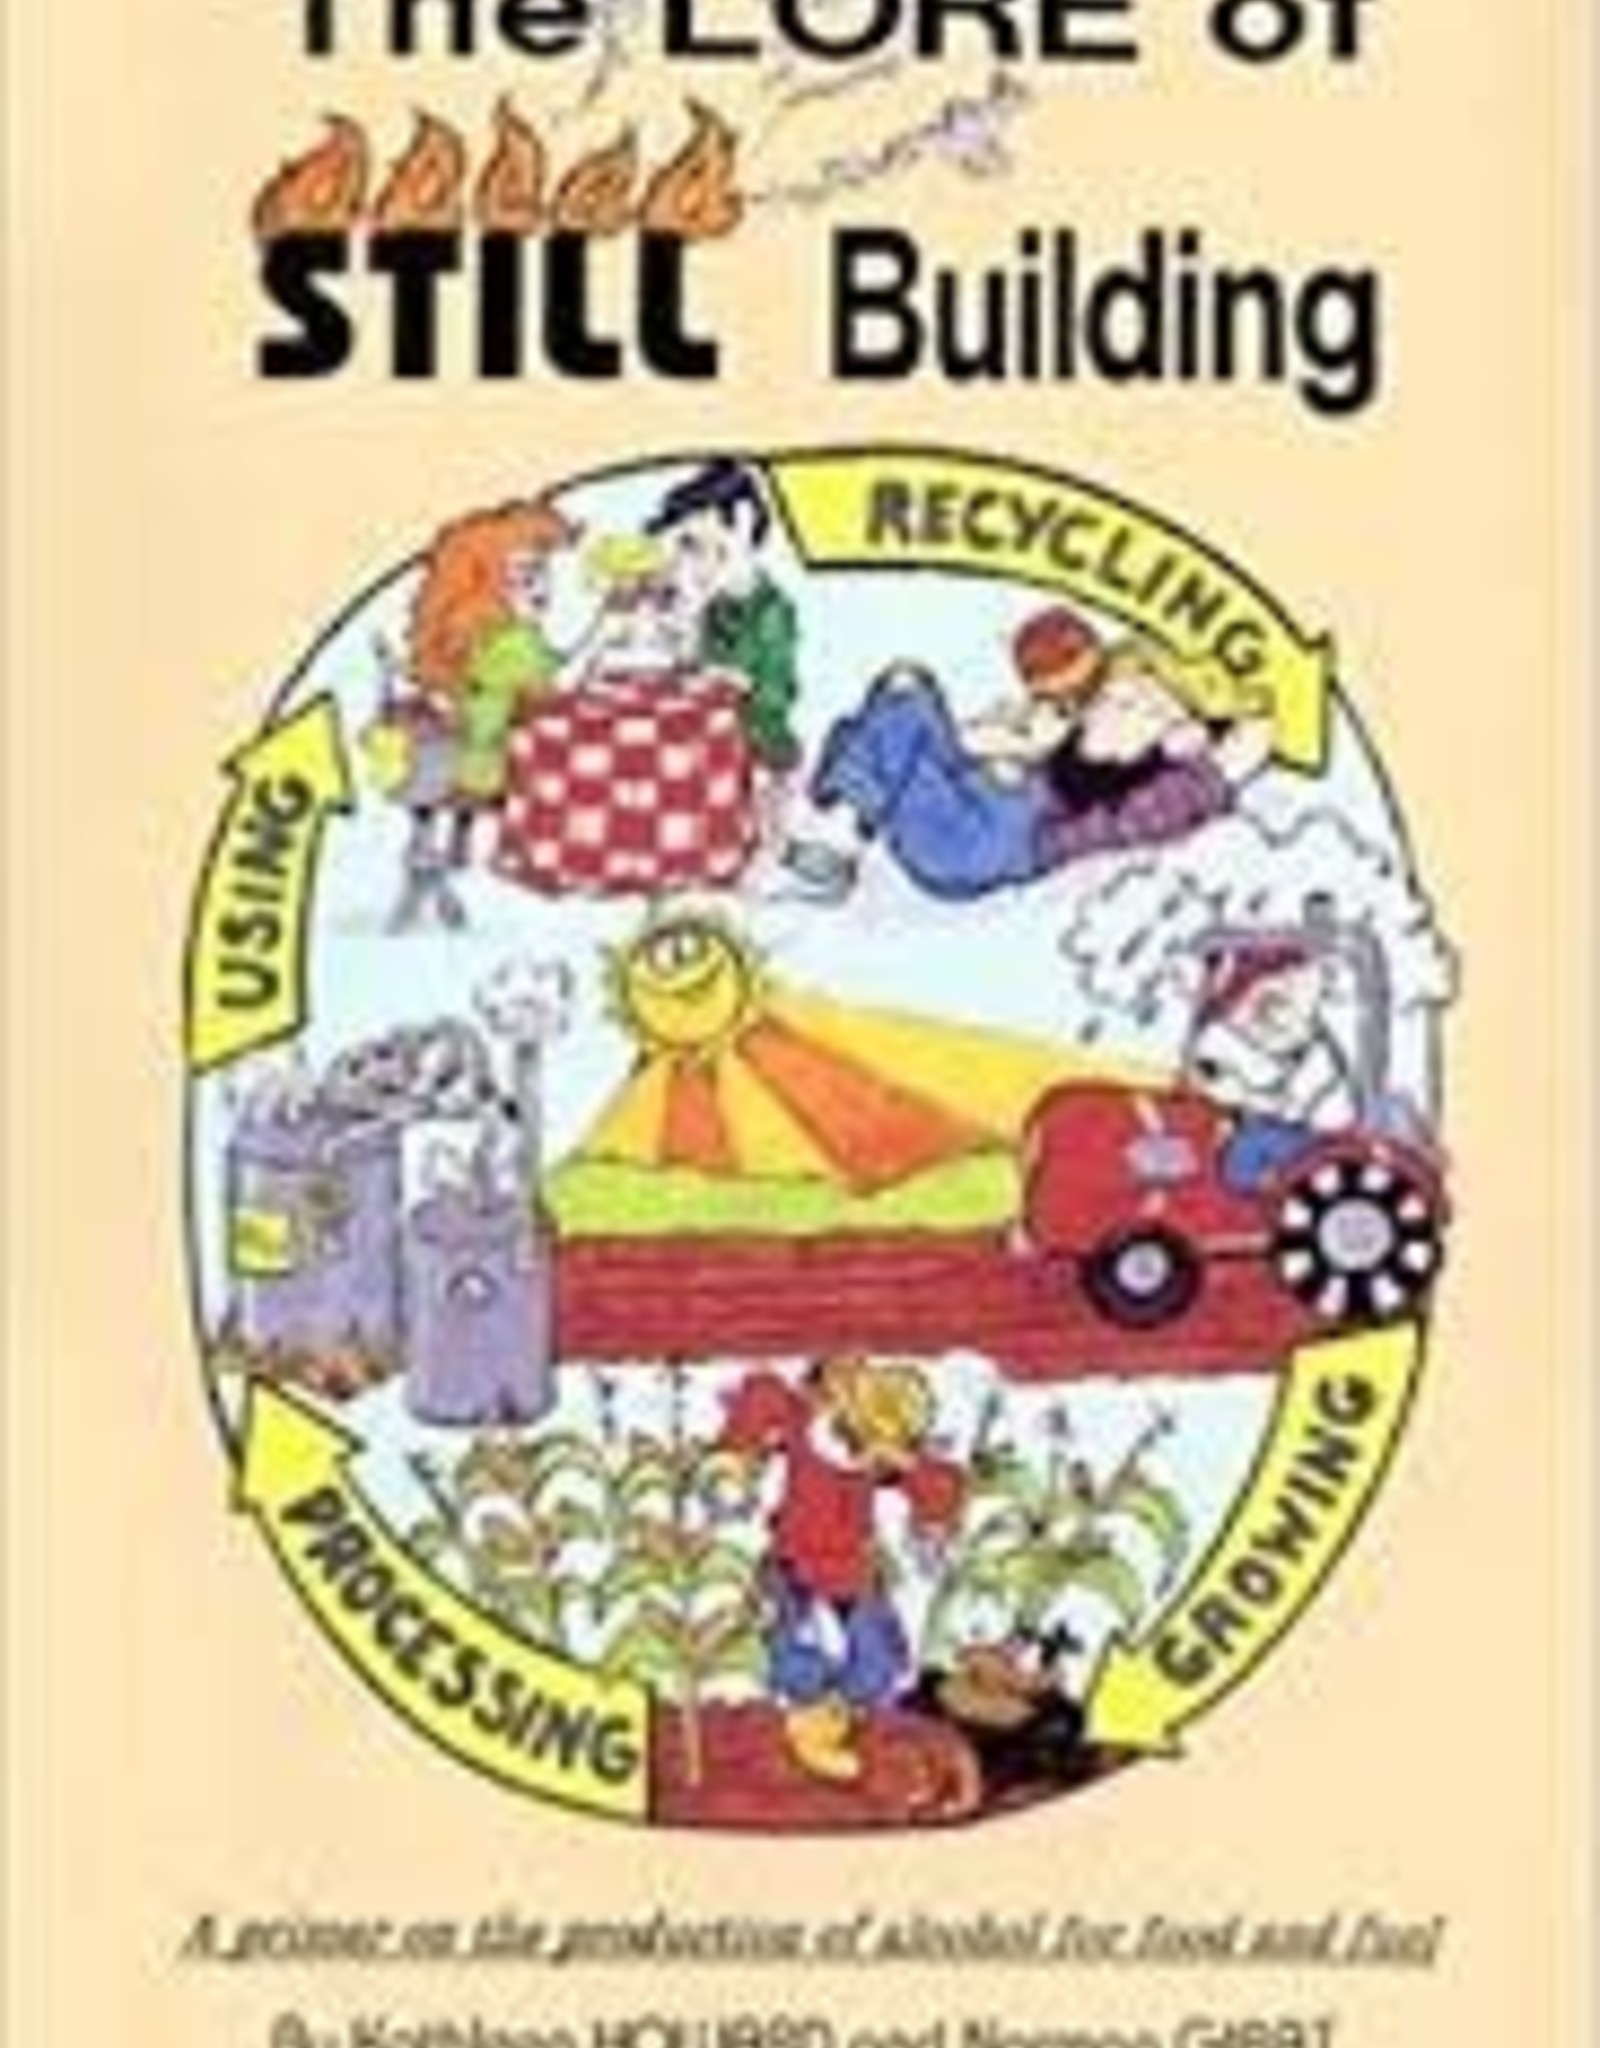 THE LORE OF STILL BUILDING